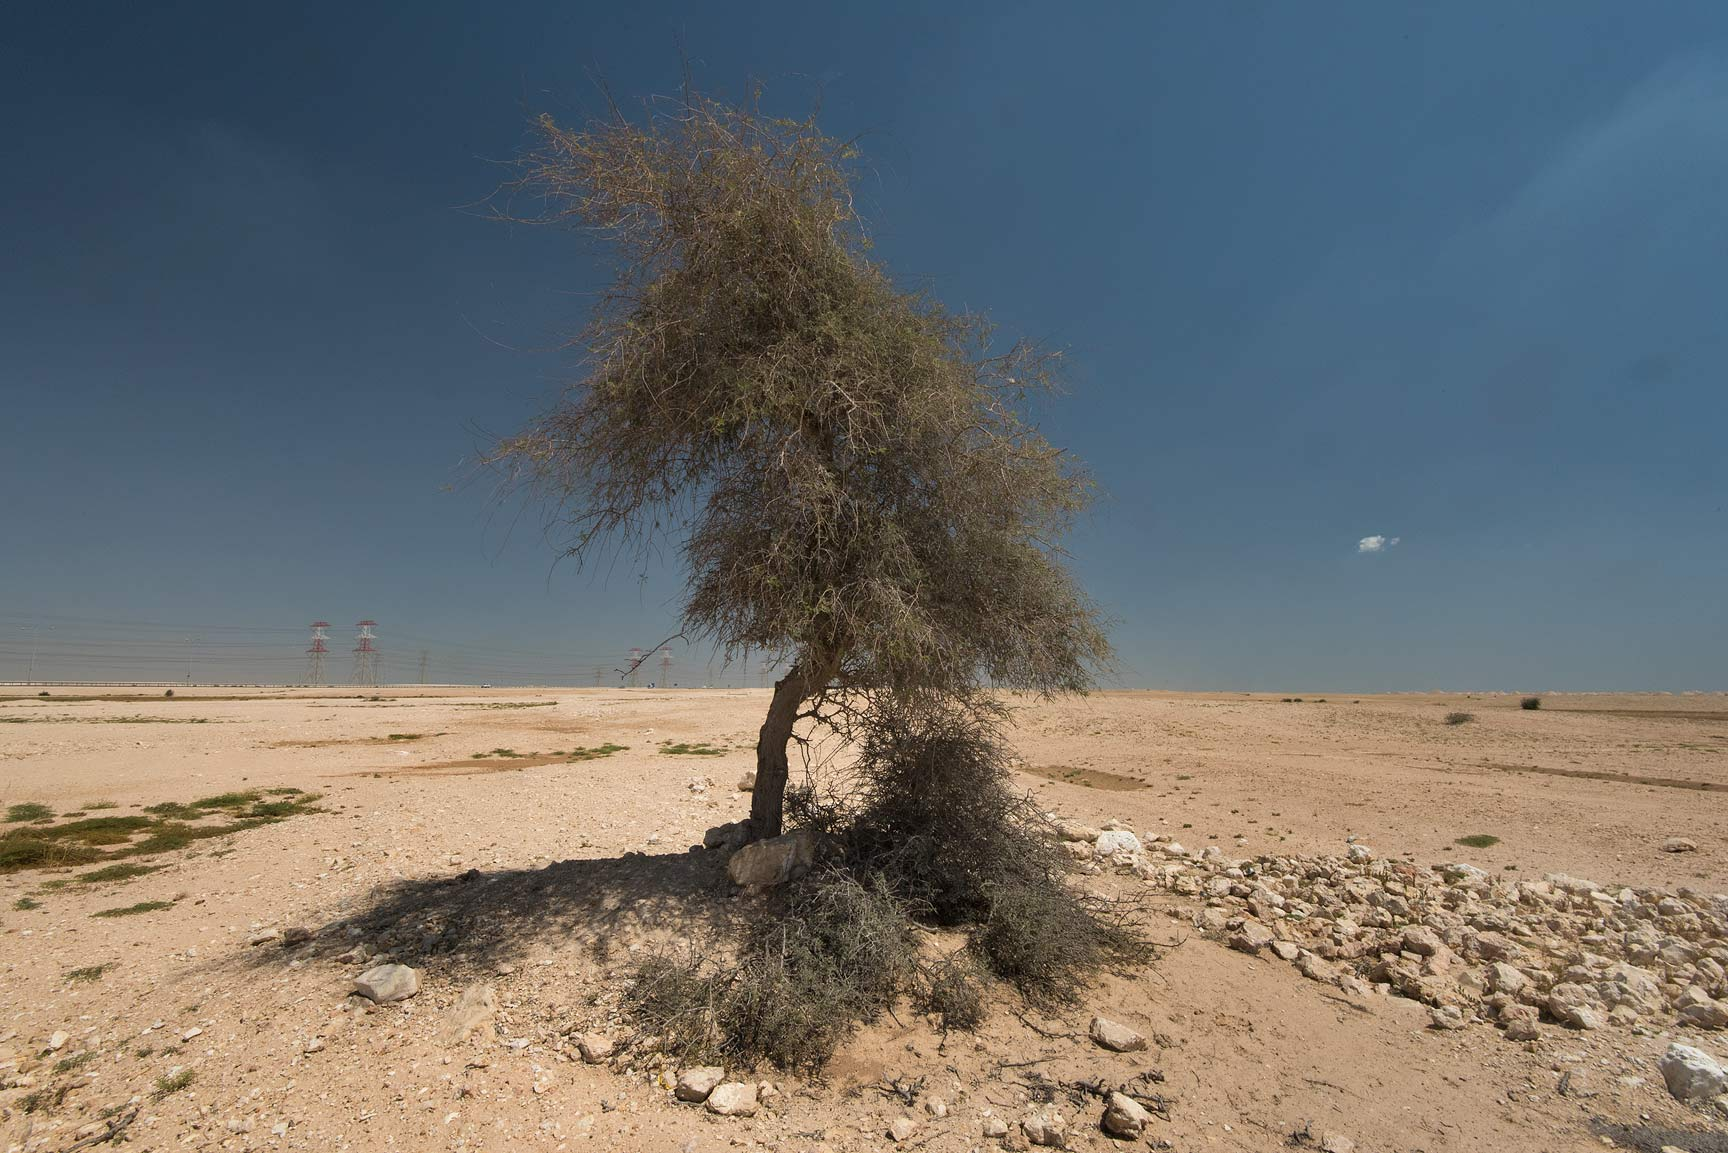 Ghaf tree (Prosopis cineraria) in a roadside depression near Route 77 to Ras Laffan. Qatar